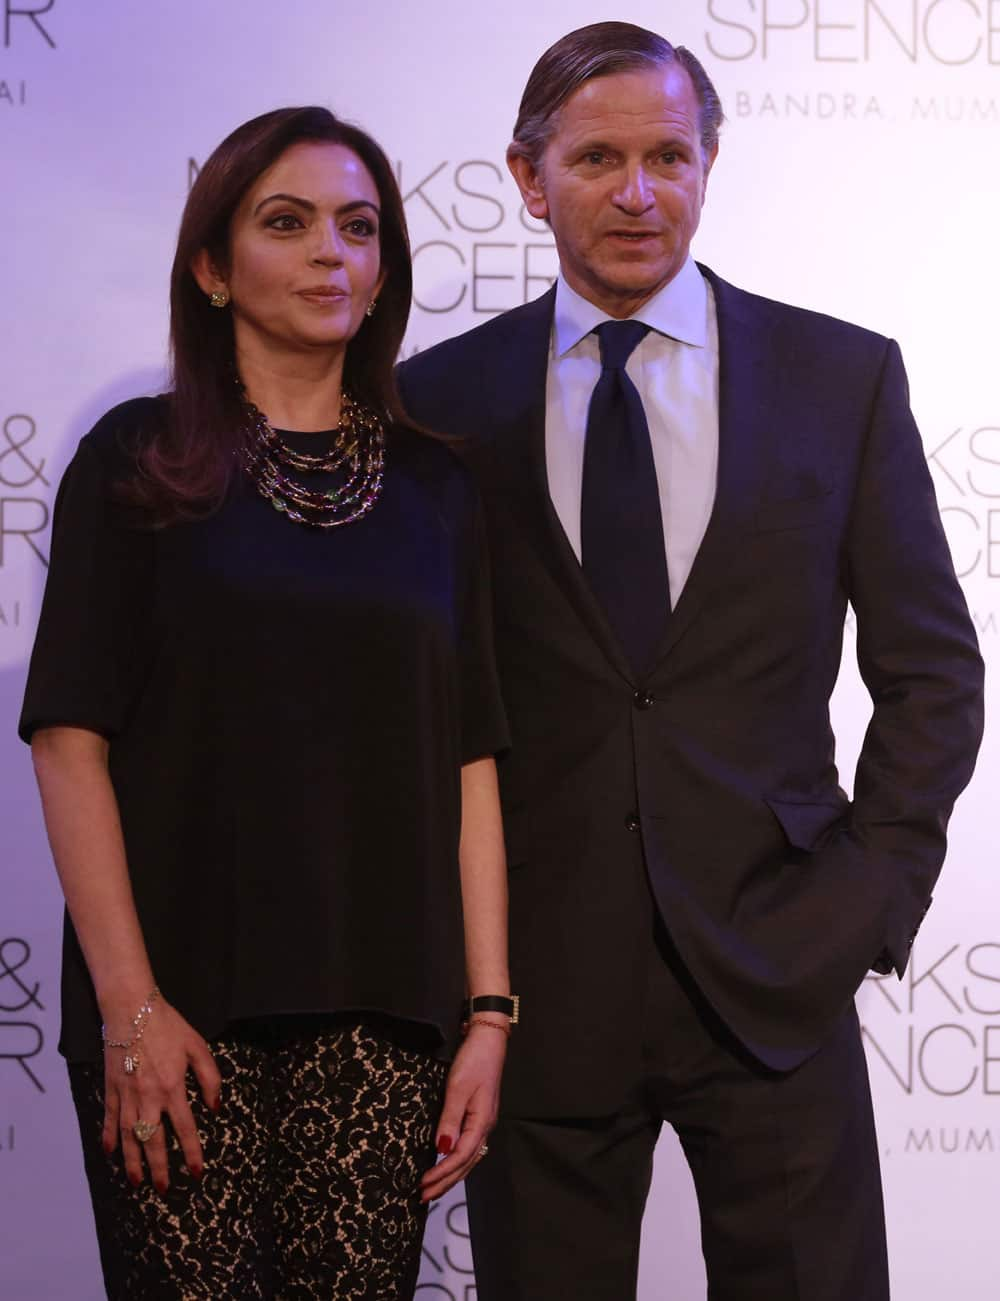 Marks & Spencer chief executive Marc Bolland, poses for photographers with Indian businesswoman Nita Ambani, left during the opening of their biggest store in India, Mumbai.